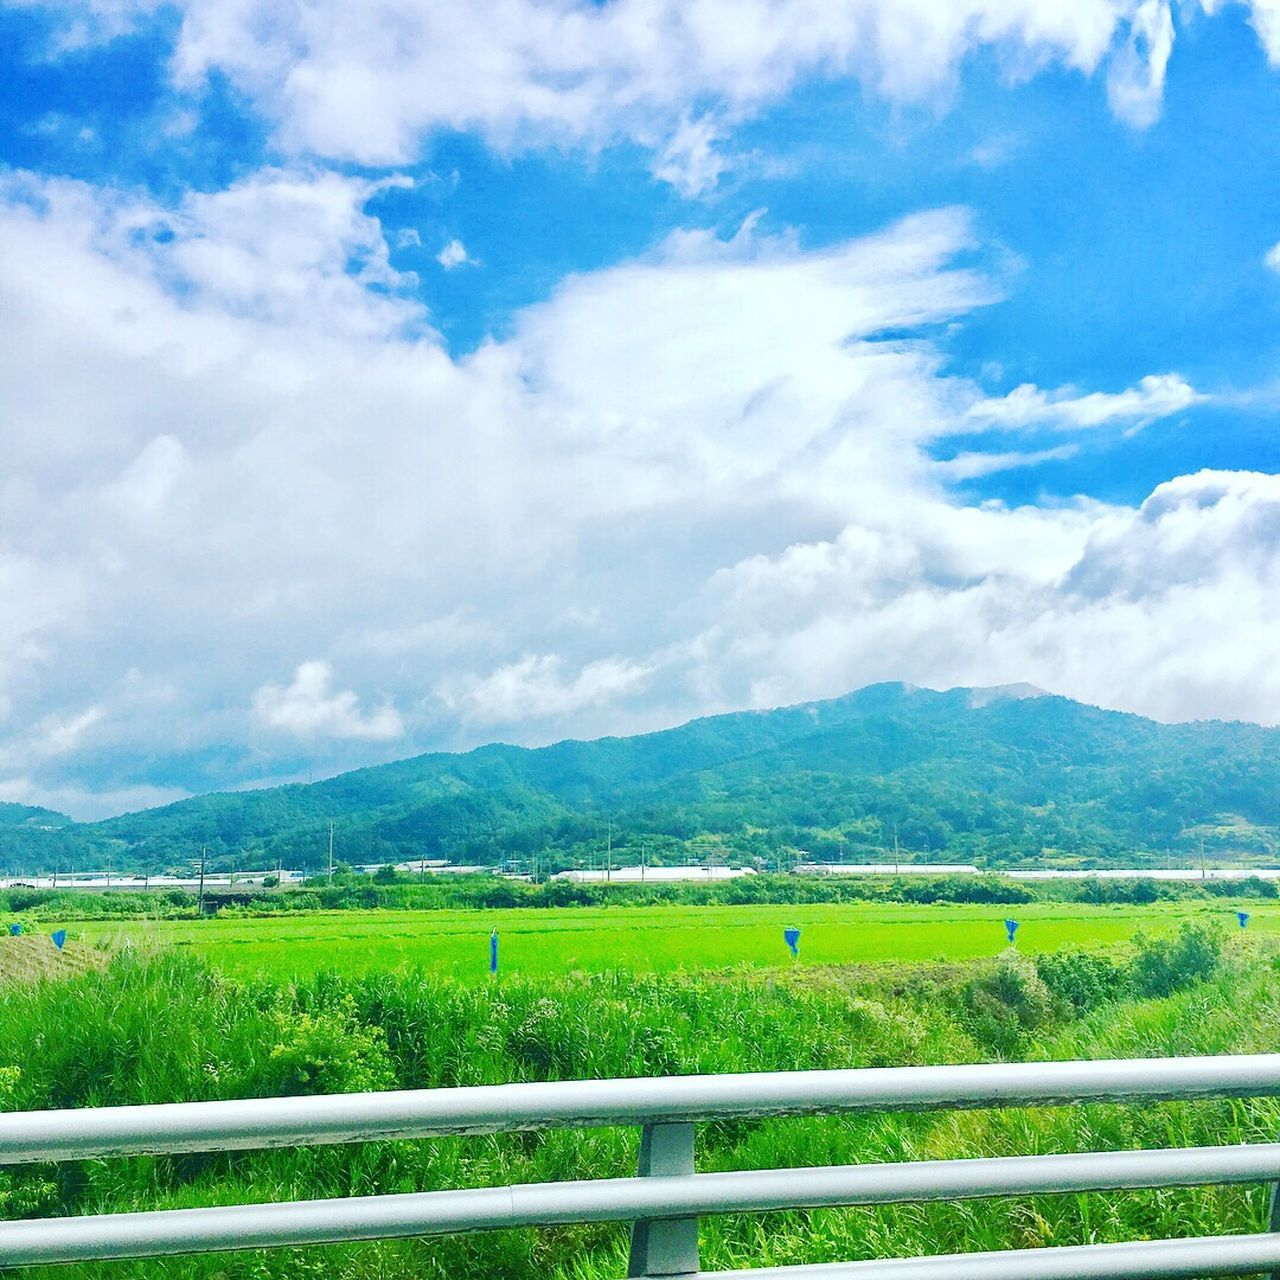 sky, scenics, field, landscape, cloud - sky, nature, no people, agriculture, beauty in nature, tranquil scene, day, mountain, tranquility, rural scene, grass, green color, outdoors, mountain range, tree